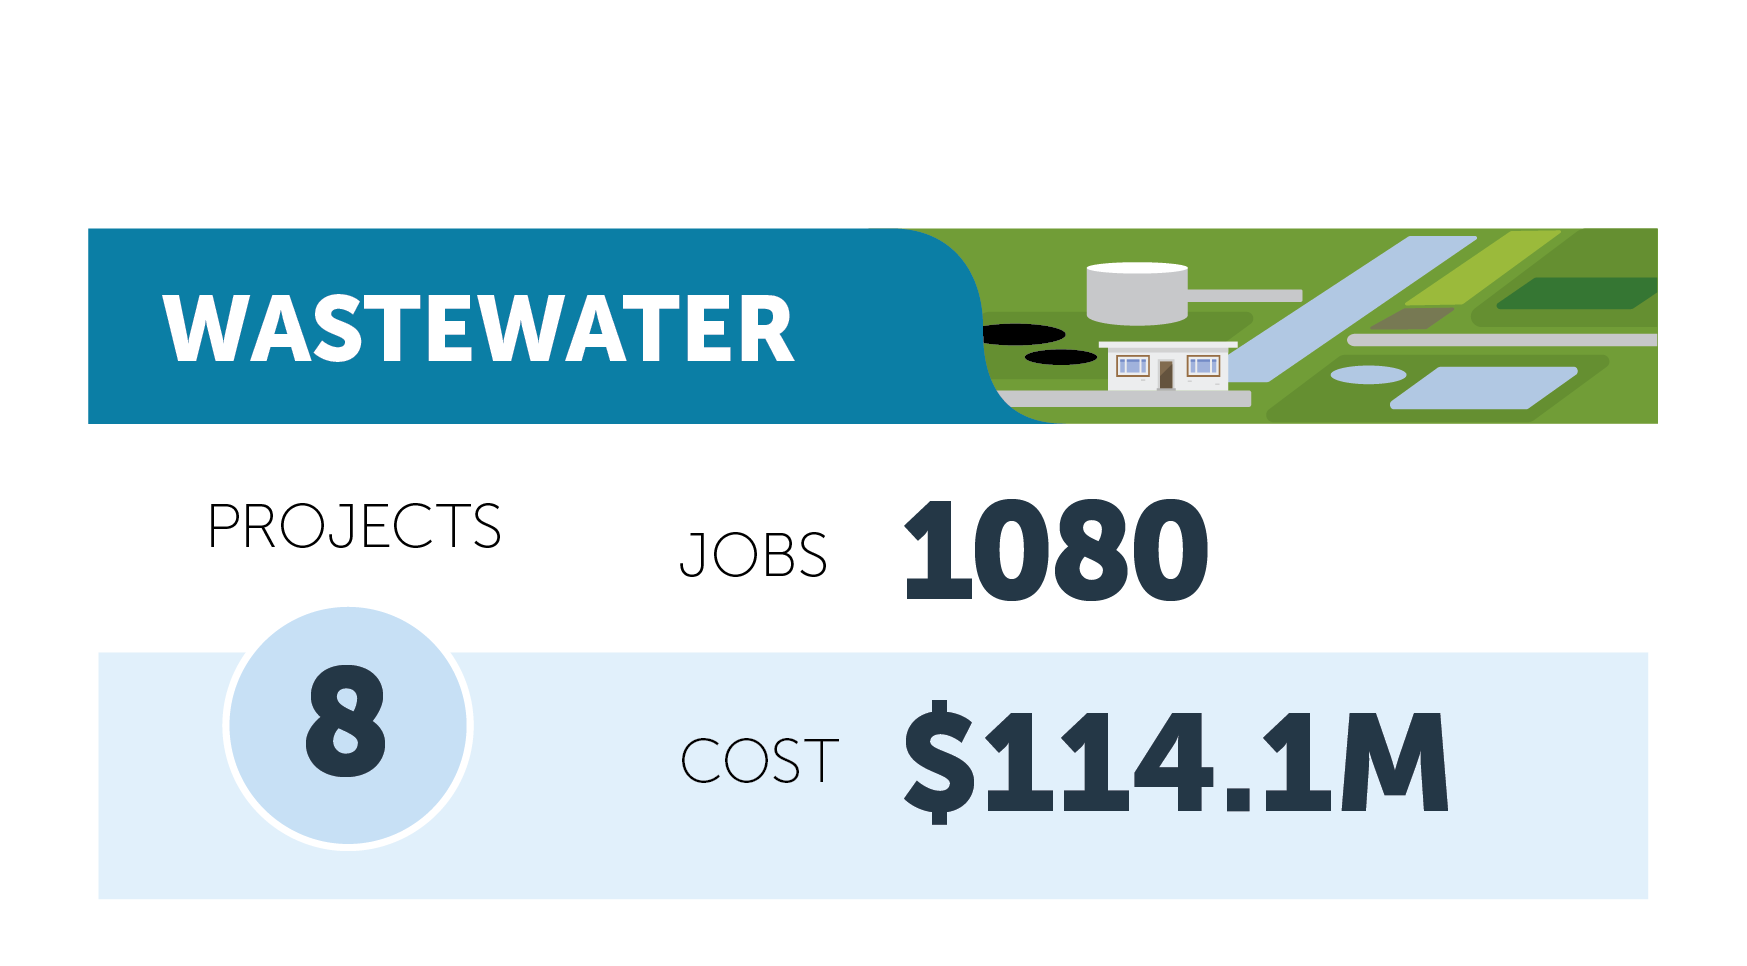 Wastewater figures